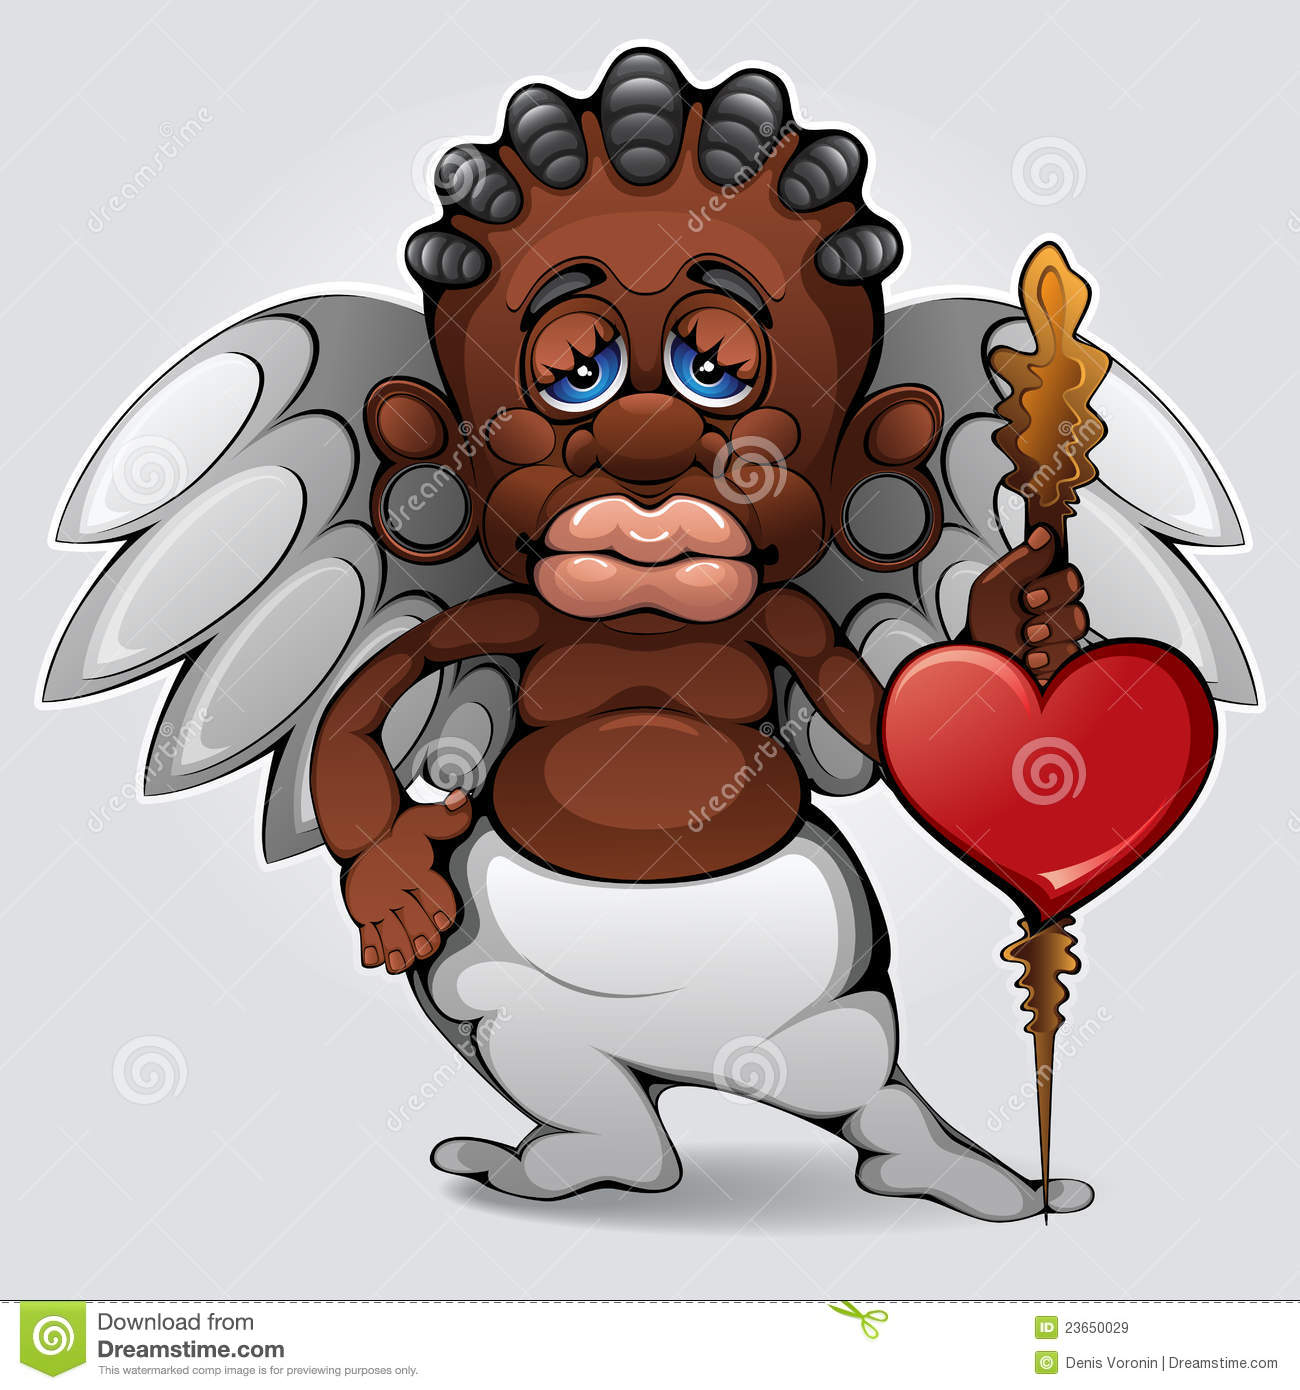 African cupid stock vector. Illustration of arrows, characters.